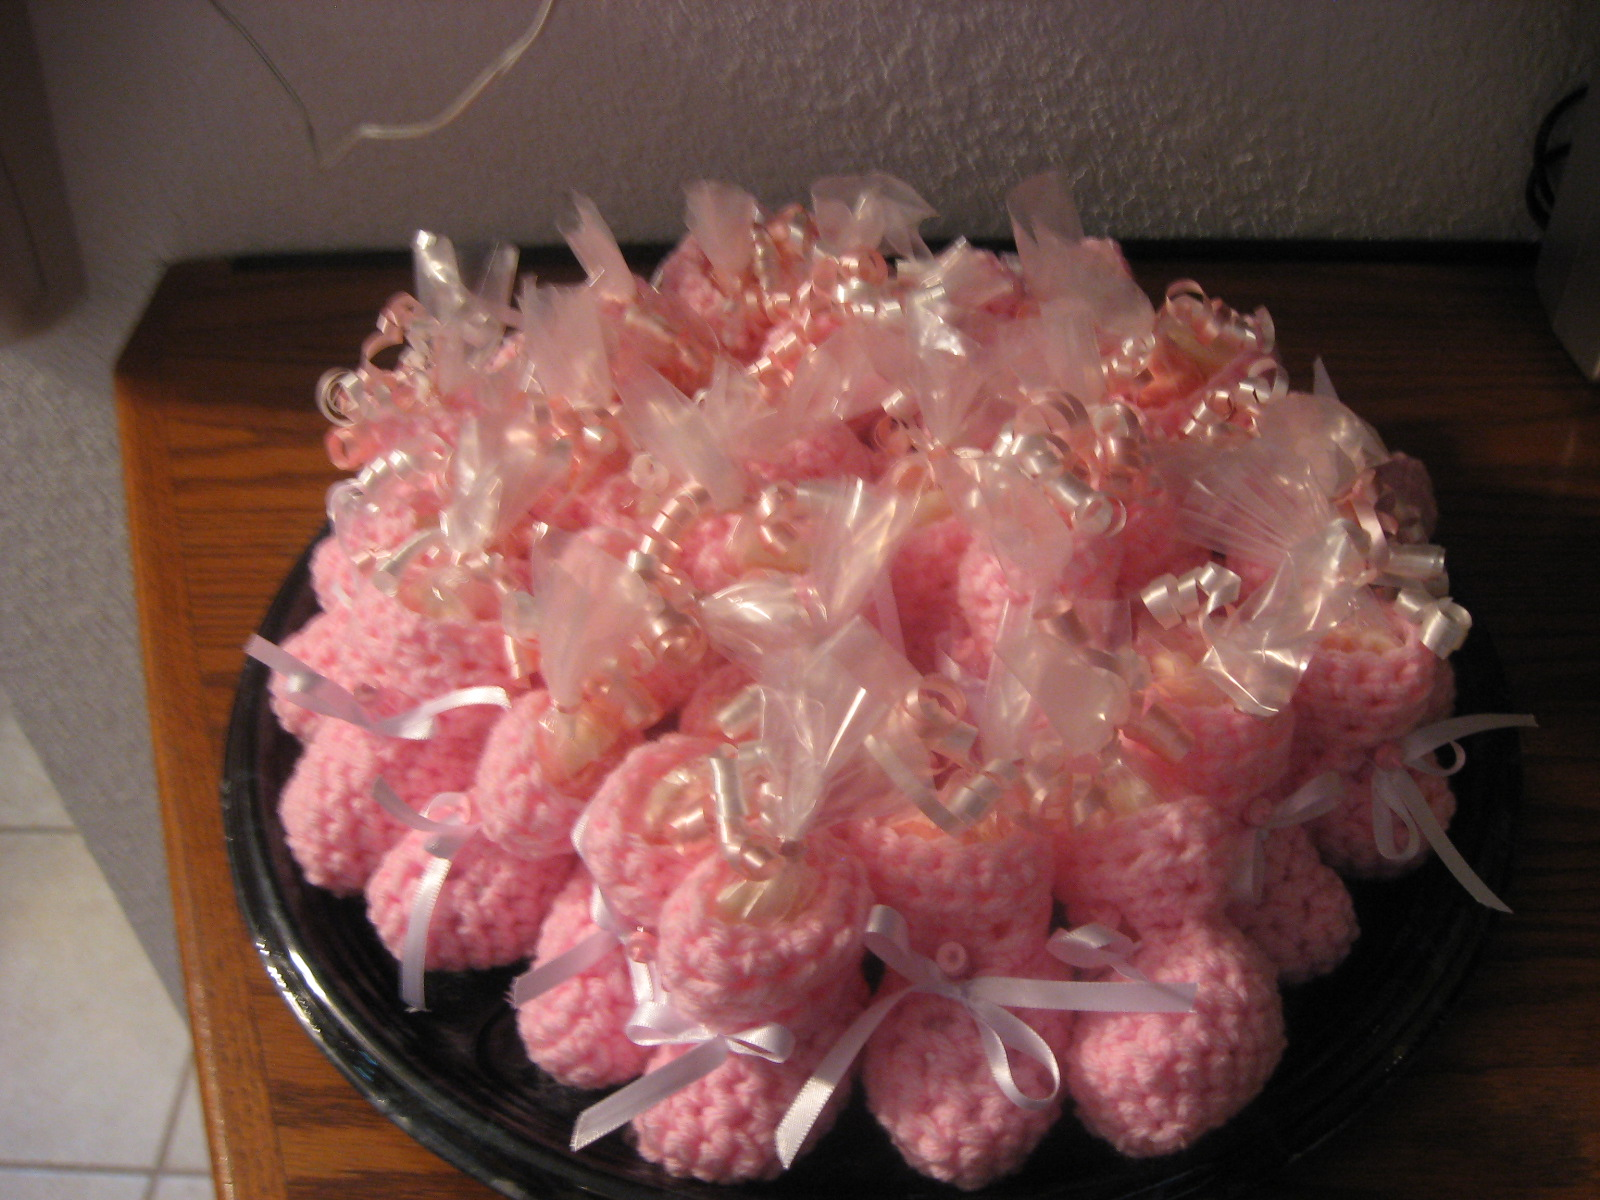 I Crocheted 30 Booties For A Recent Baby Shower That I Gave For My New  Daughter In Law. My Granddaughter, Mandy Made Candy Bottles And Pacifiers  And We ...